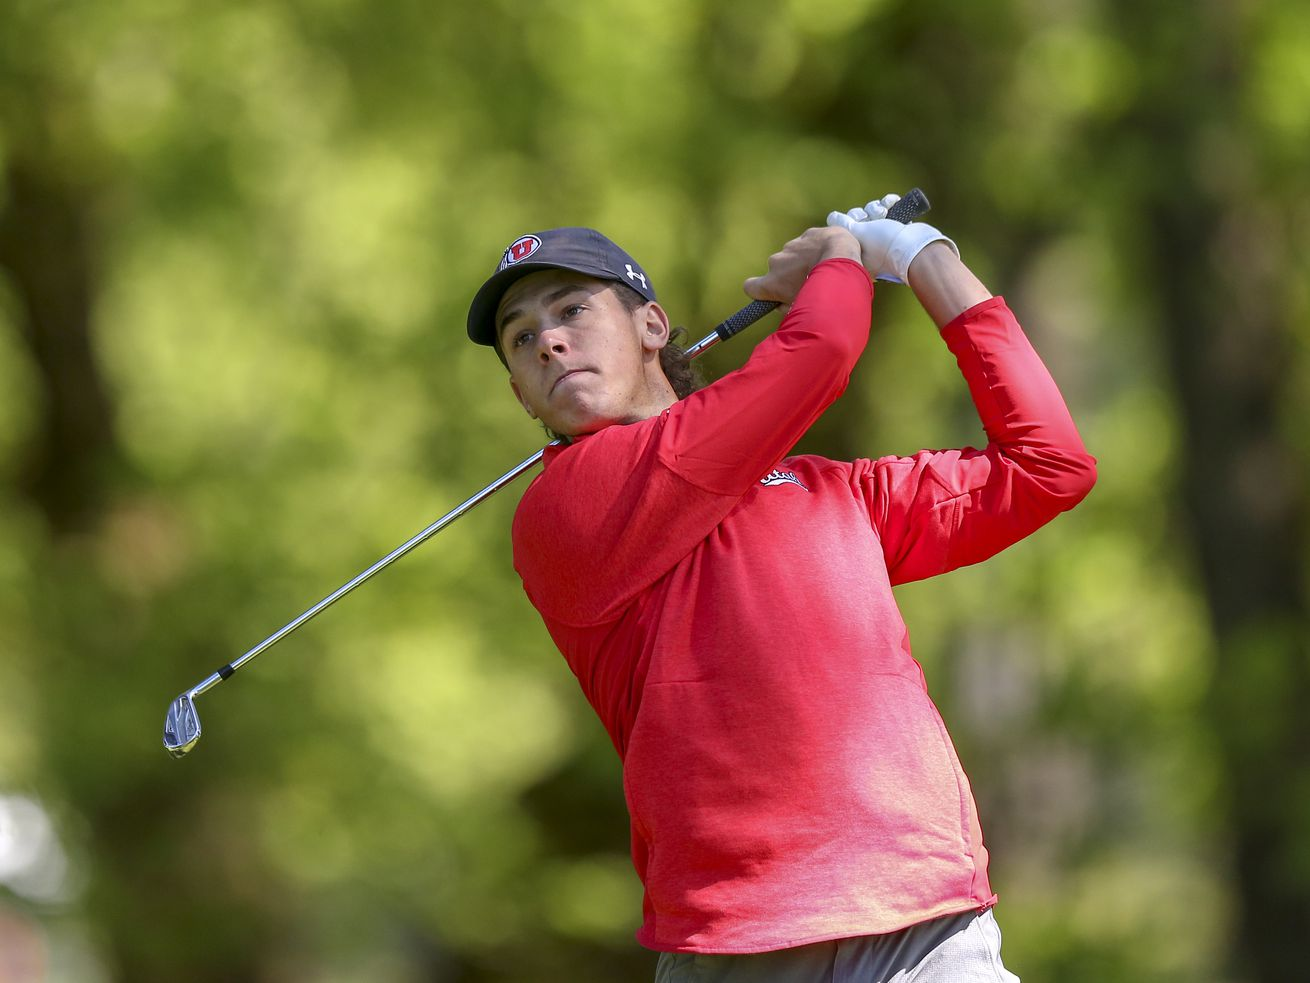 Ute golf team was on verge of making history when season came to an abrupt end